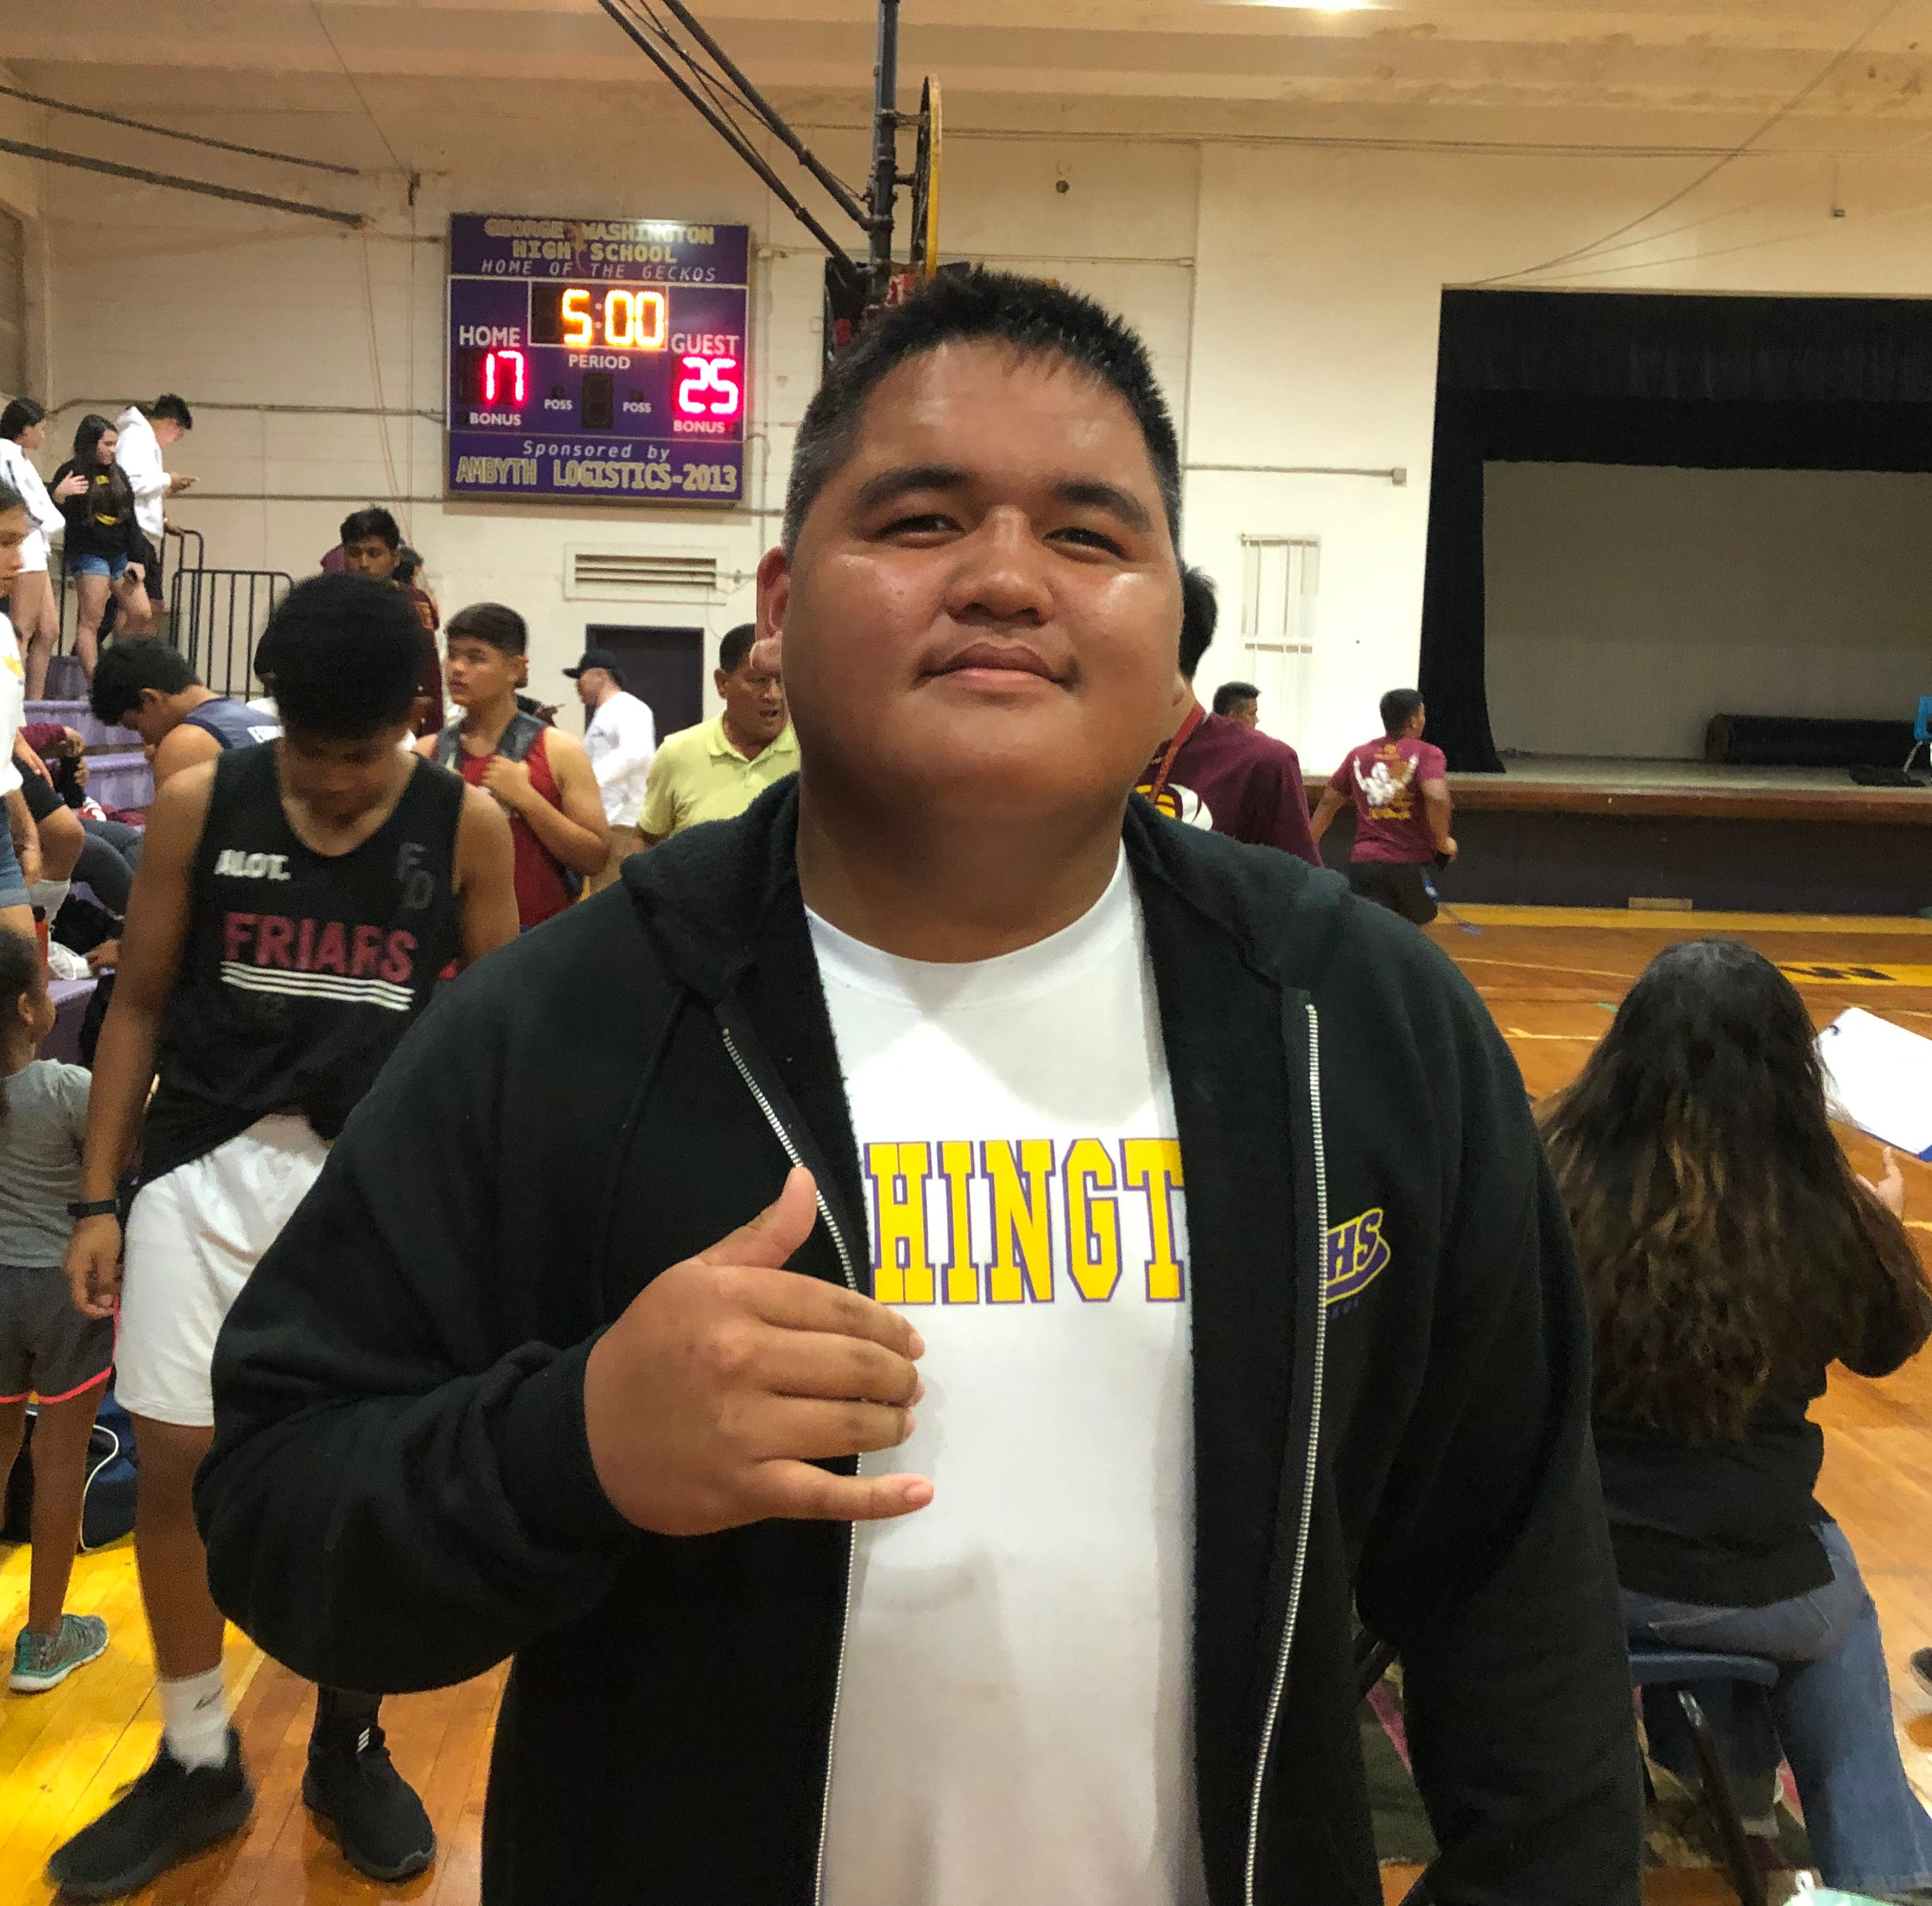 Ethaniel Cali is the PDN's Player of the Week